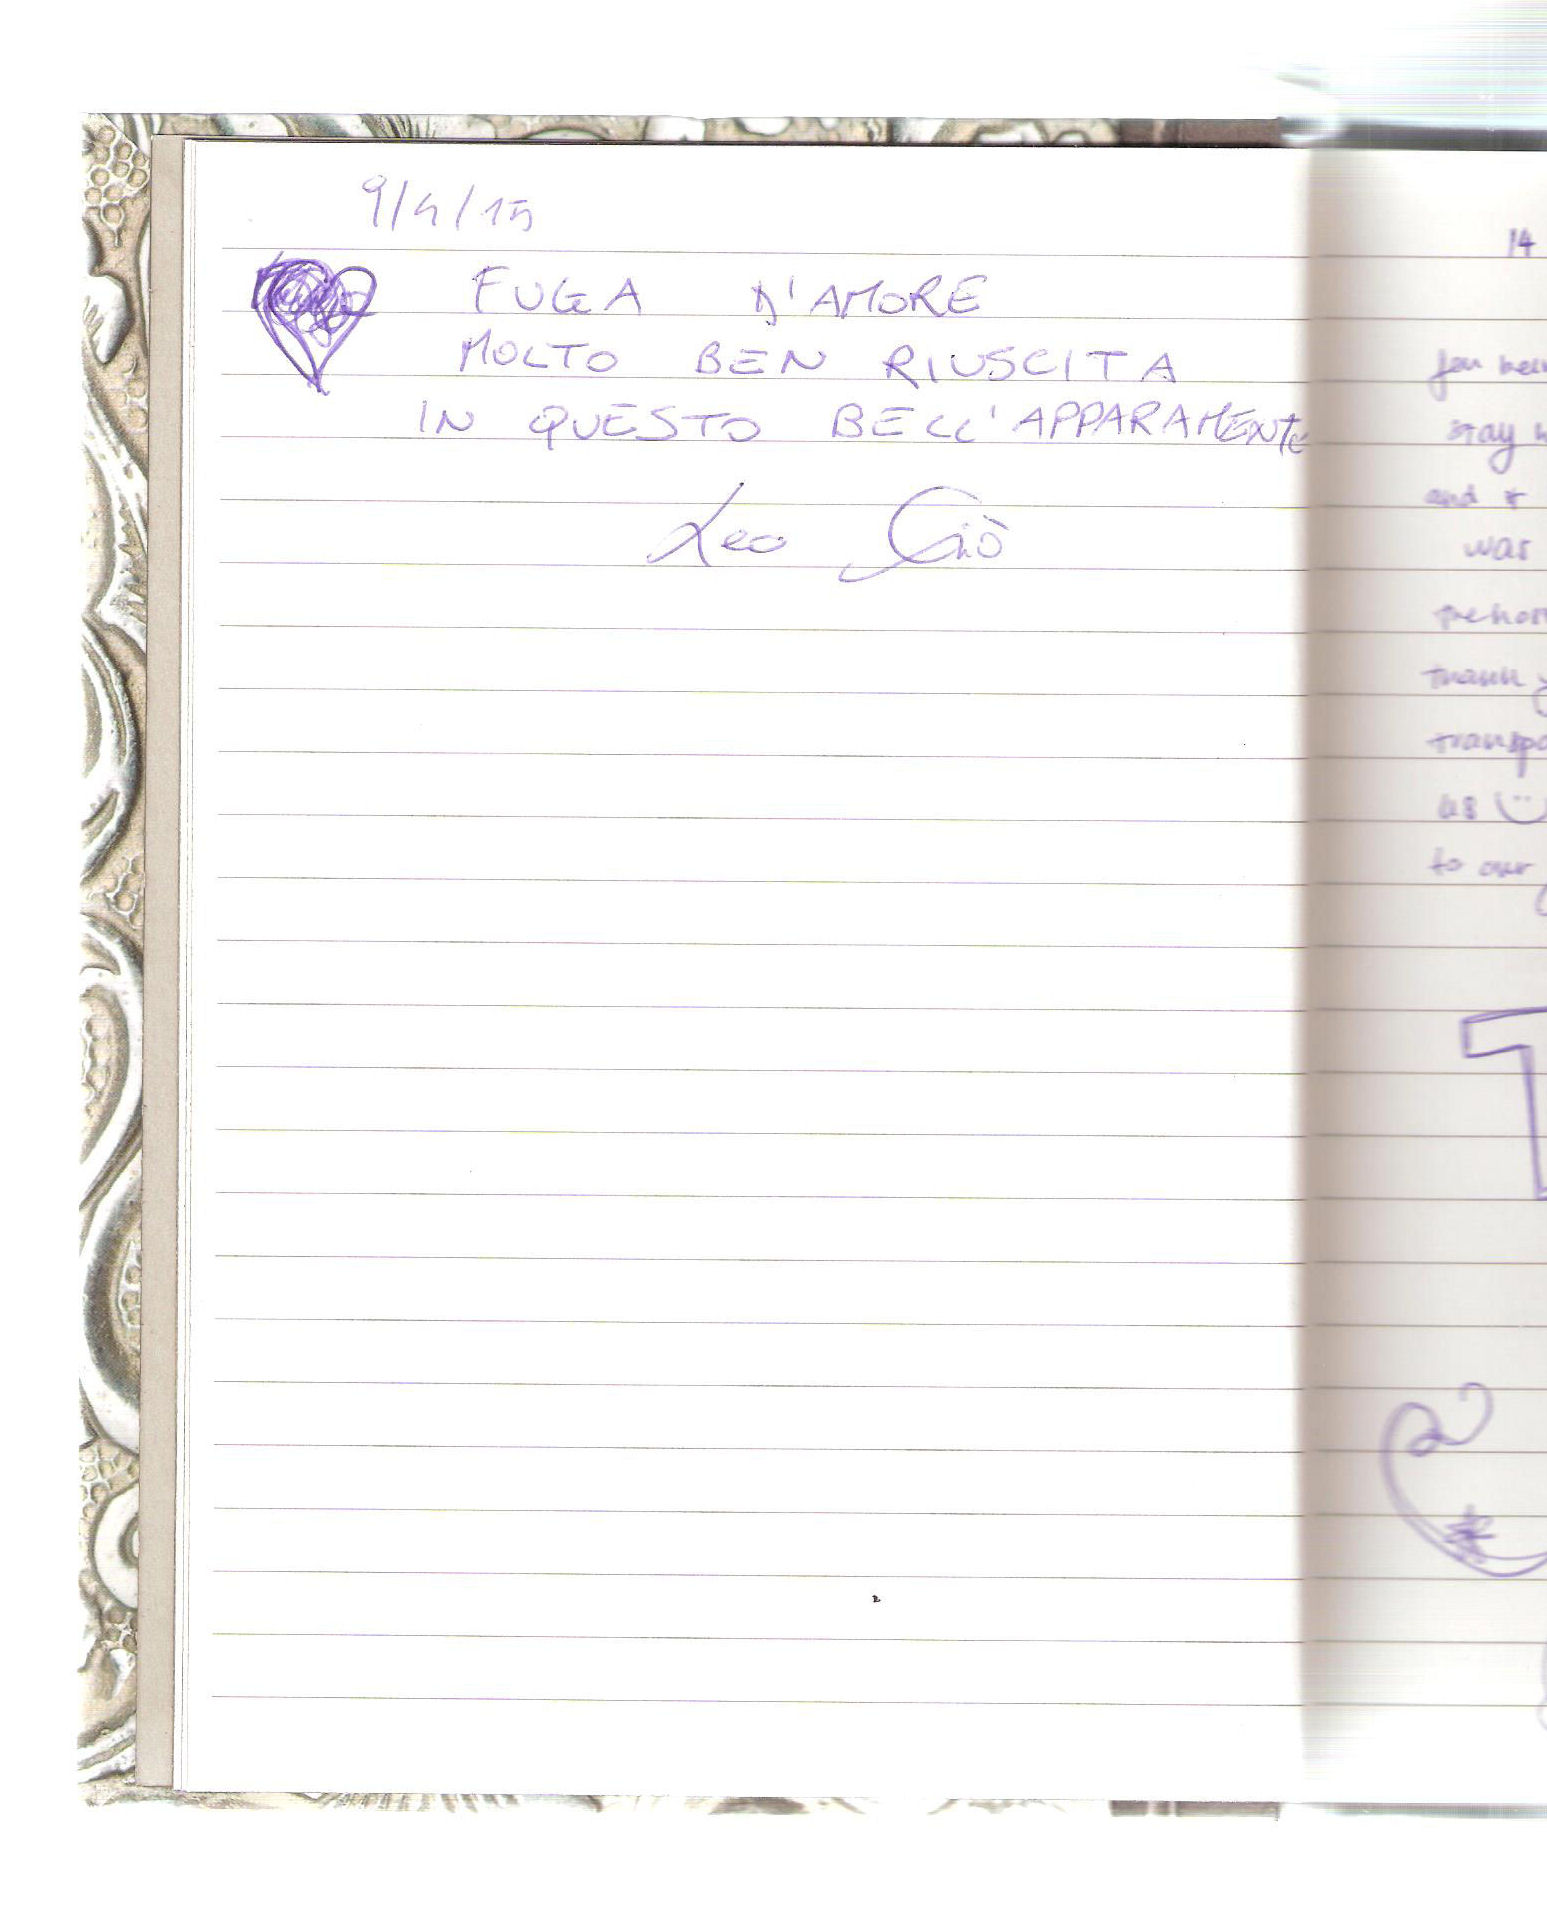 guestbook-page-006